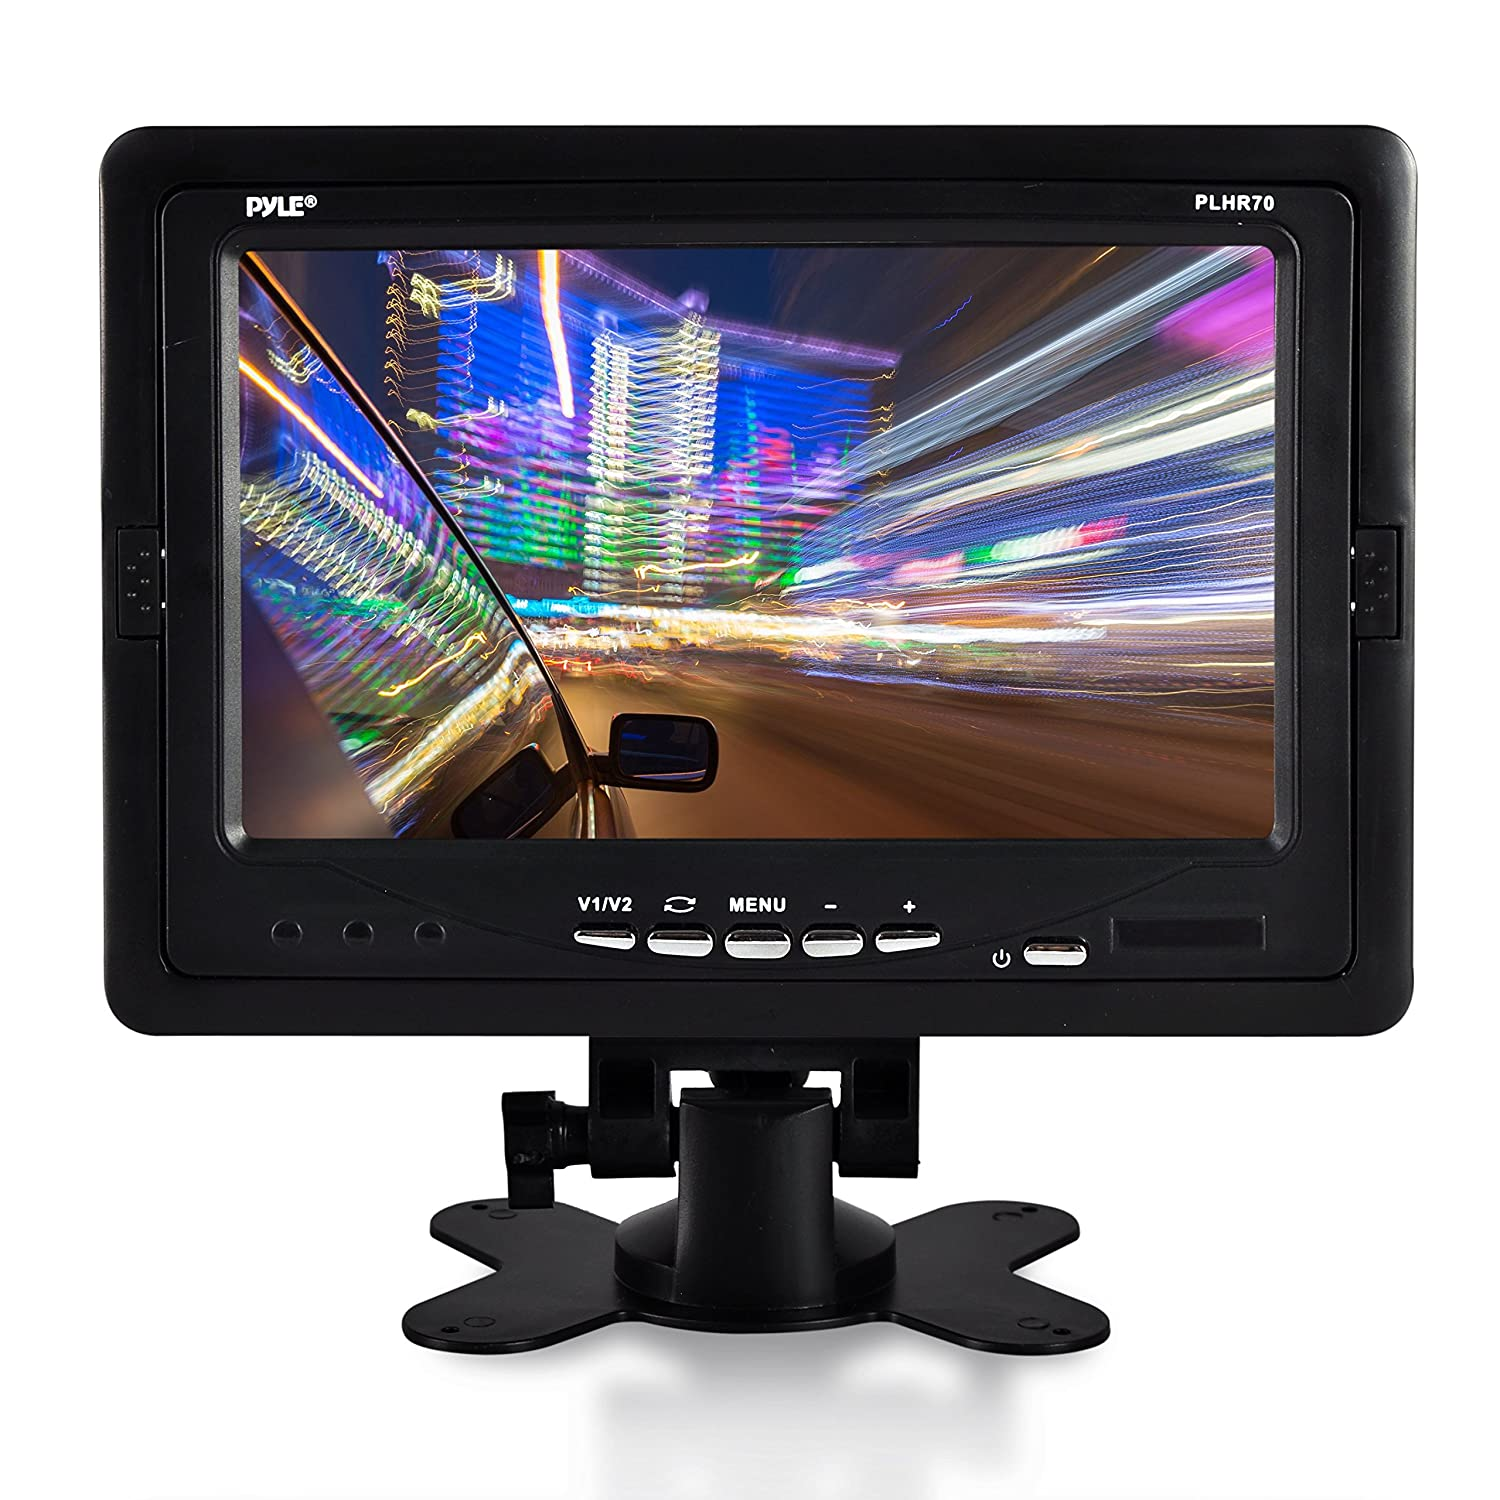 "Premium 7"" Inches Rearview Car LCD Monitor by Pyle – Parking Monitor Assistant with Wireless Remote Control – Full Color Wide Screen – Can Be Installed in Headrest Post (PLHR70)"